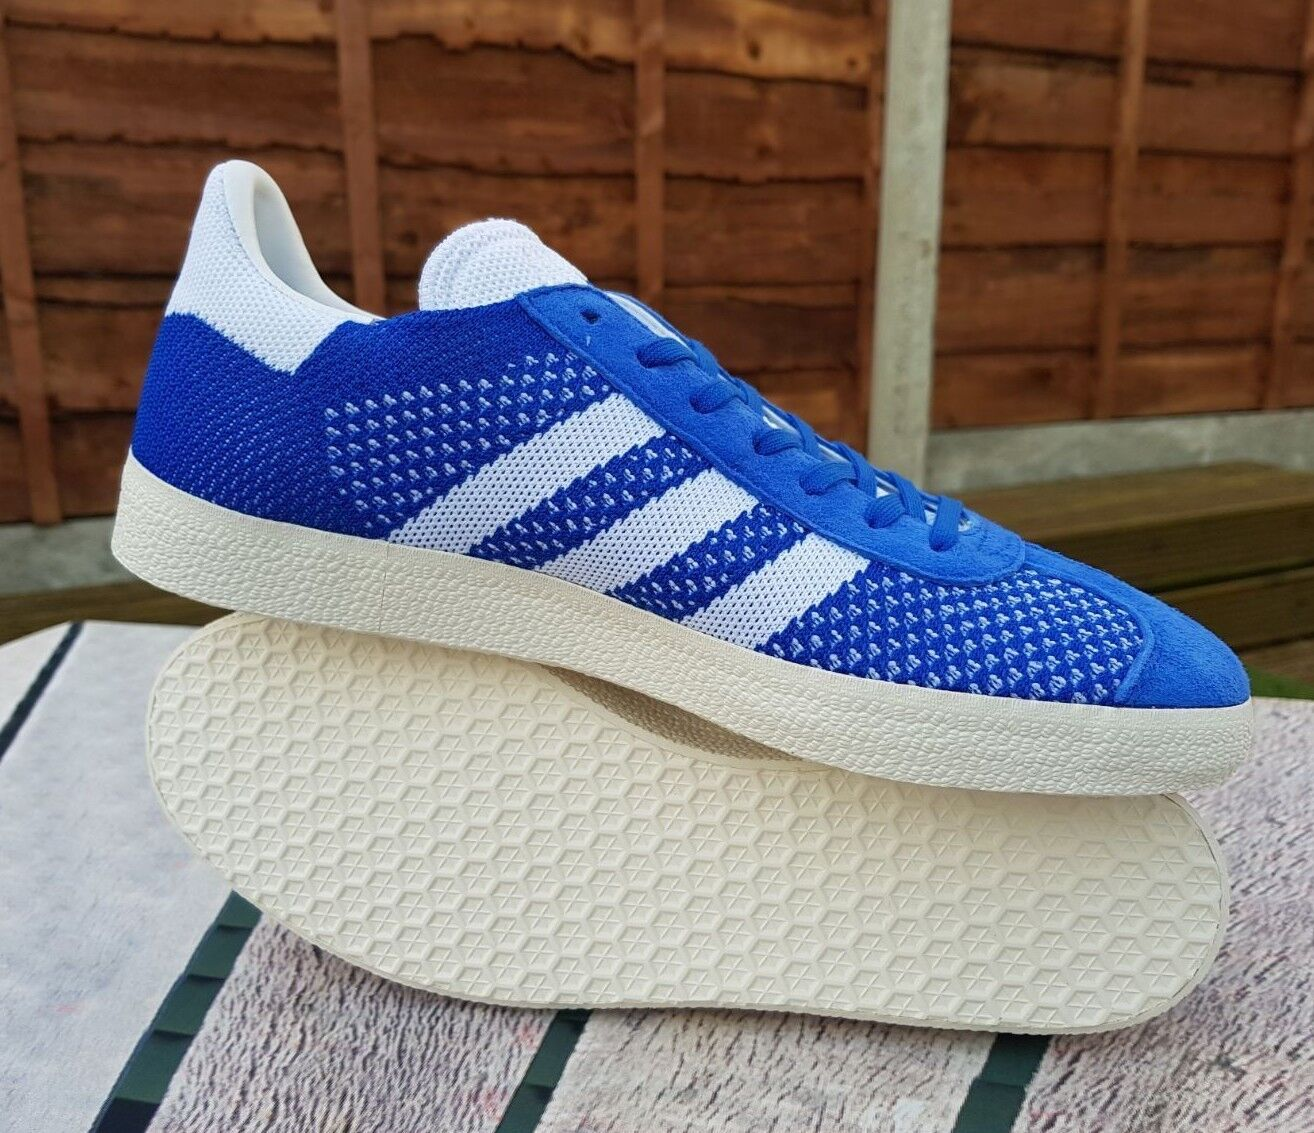 Latest Adidas Original Gazelle Men's Trainers (Variable Sizes)Blue Brand New Box